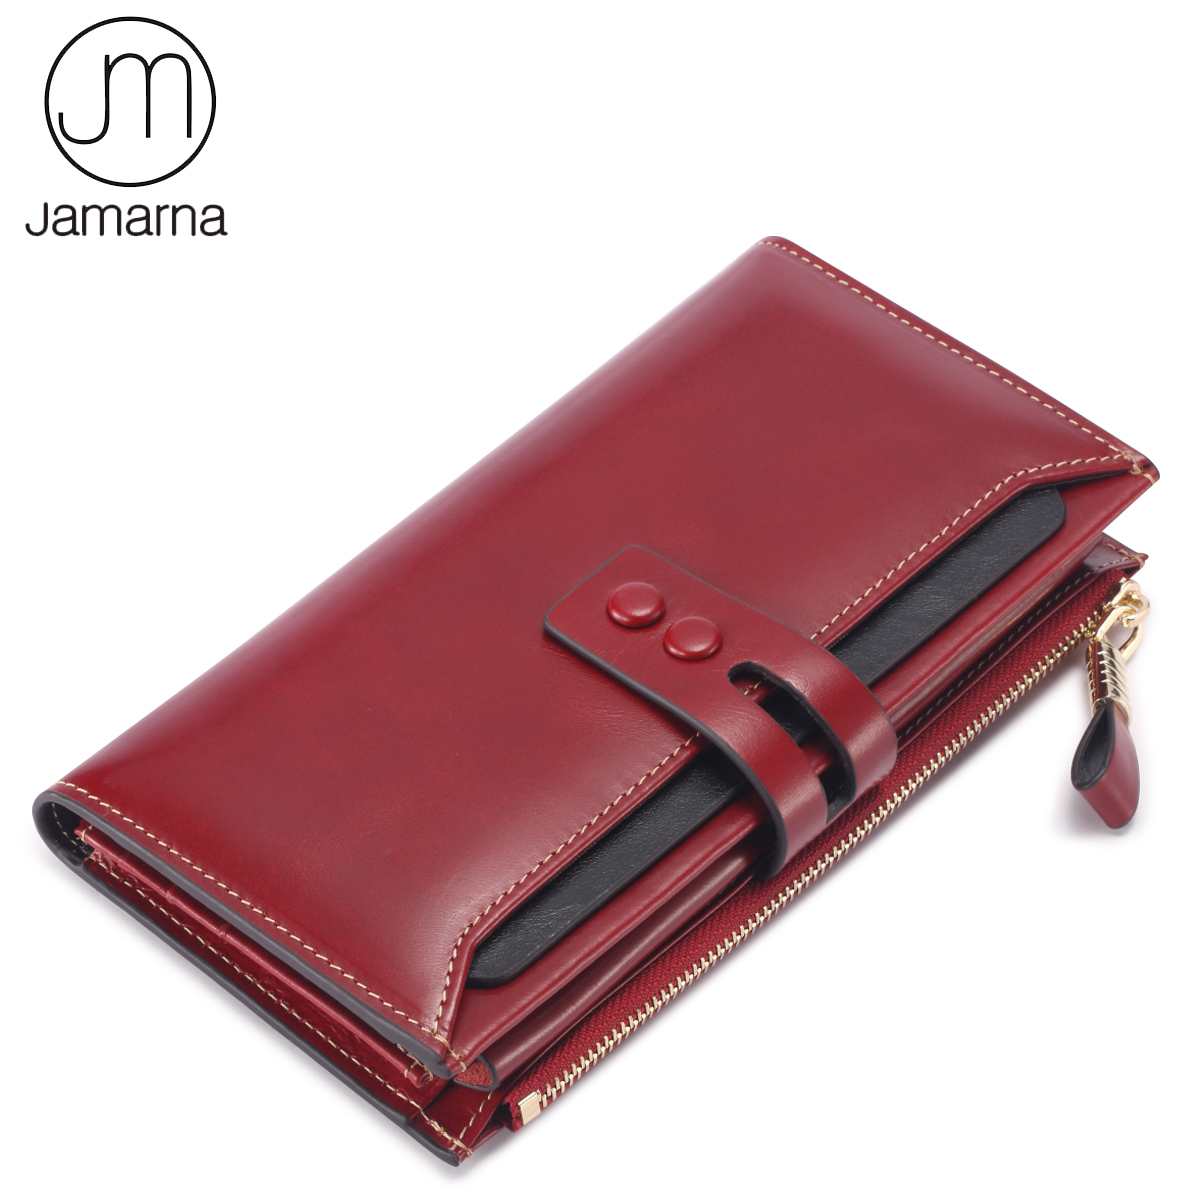 Jamarna Brand Women Wallets Genuine Leather Long Clutch Women Purse With Card Holder Phone Zipper Pocket Ladies Wallet Female<br>